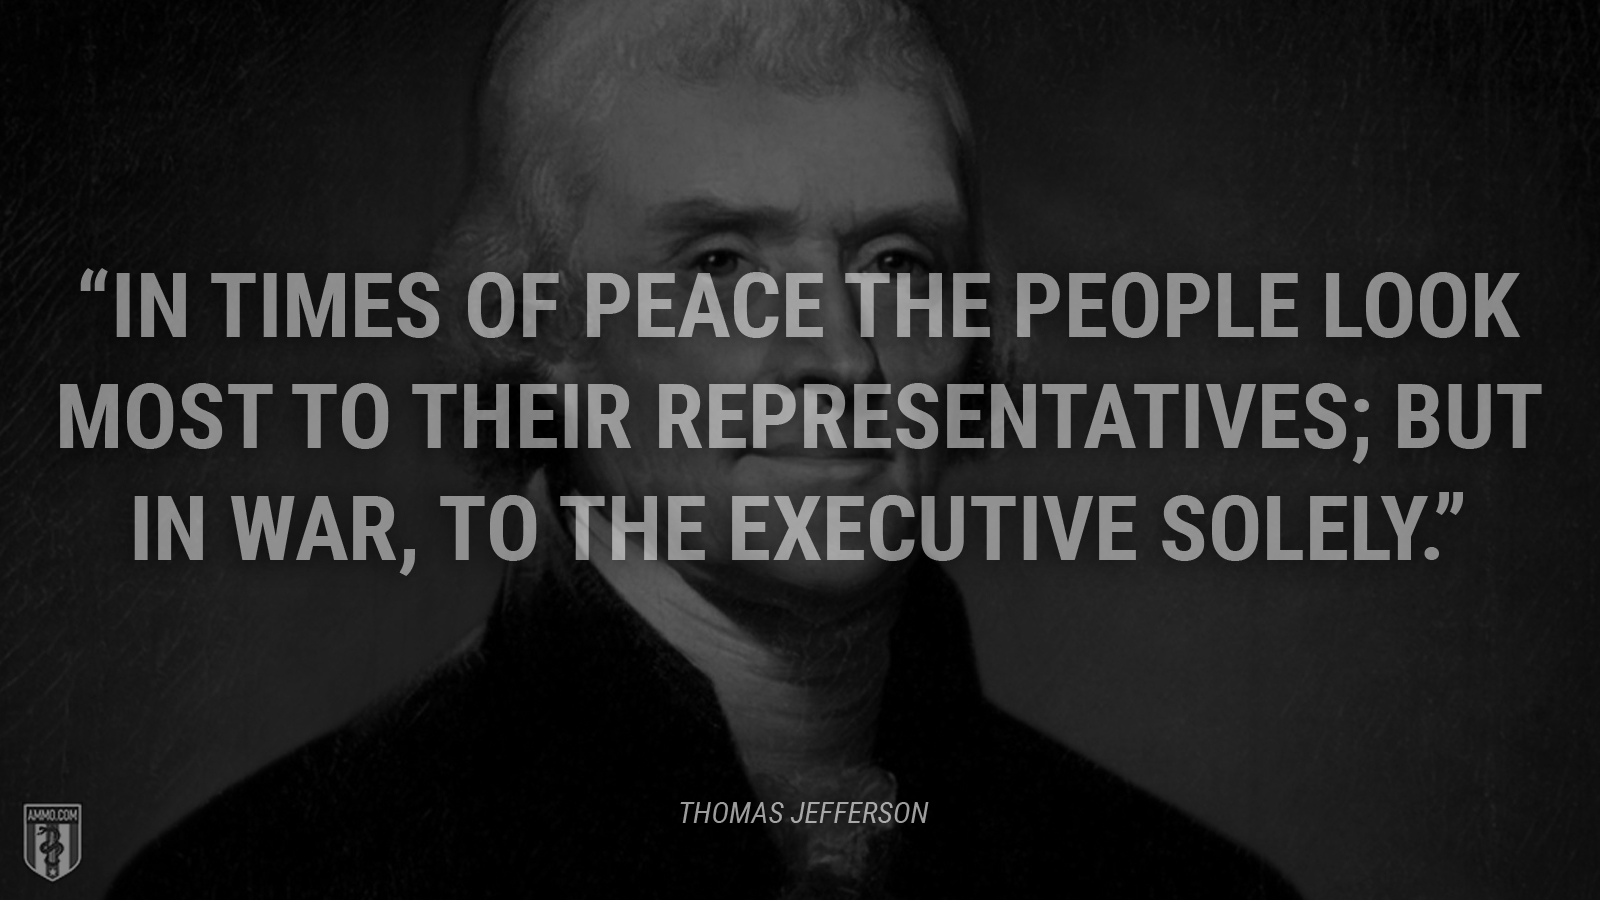 """In times of peace the people look most to their representatives; but in war, to the executive solely."" - Thomas Jefferson"